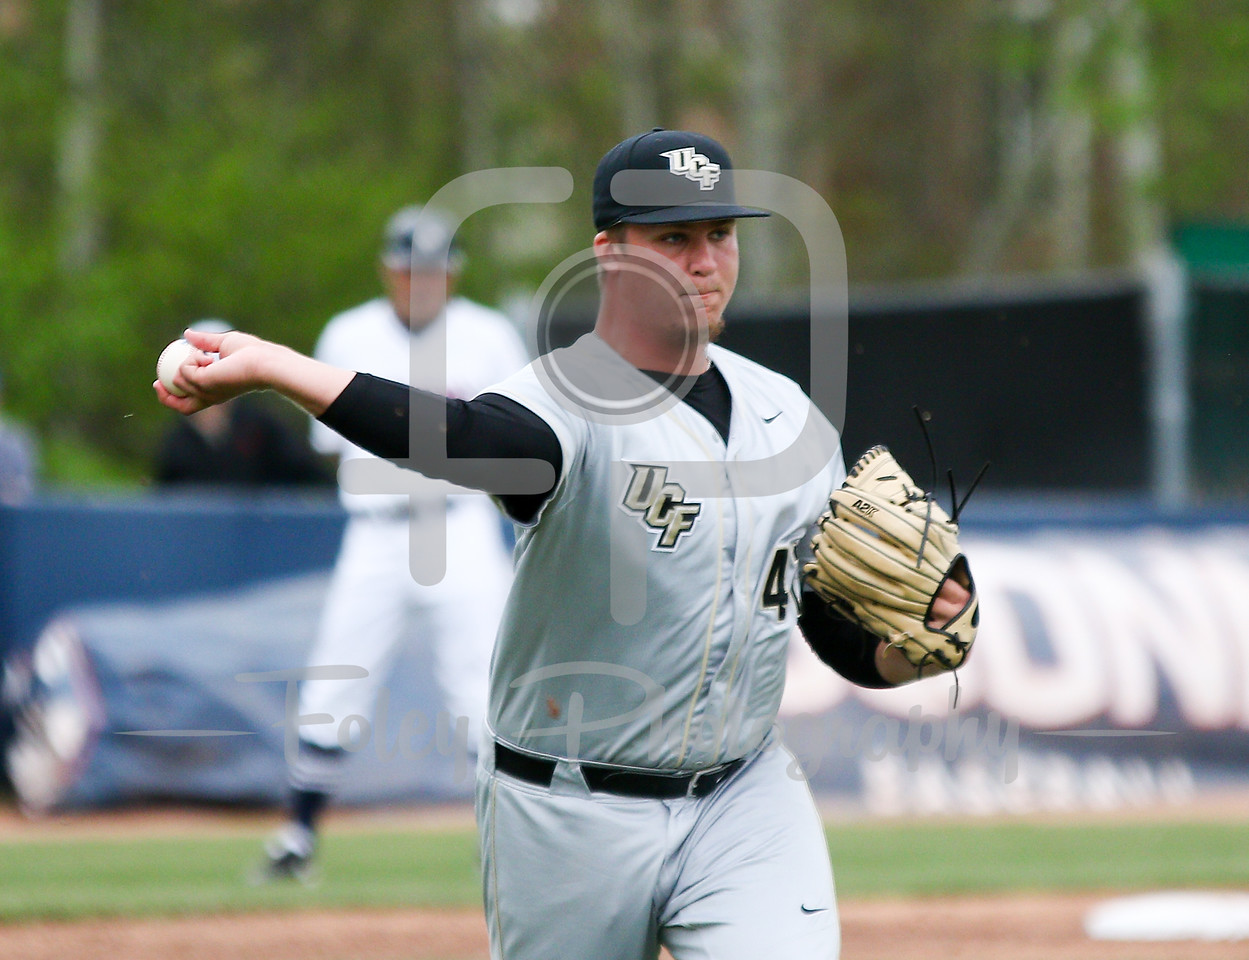 5/13/16 Storrs Connecticut: Central Florida pitcher Robby Howell throws to first base during an American Athletic Conference matchup. The Huskies defeated the Knights 5-4 at J.O. Christian Field in Storrs, Connecticut.